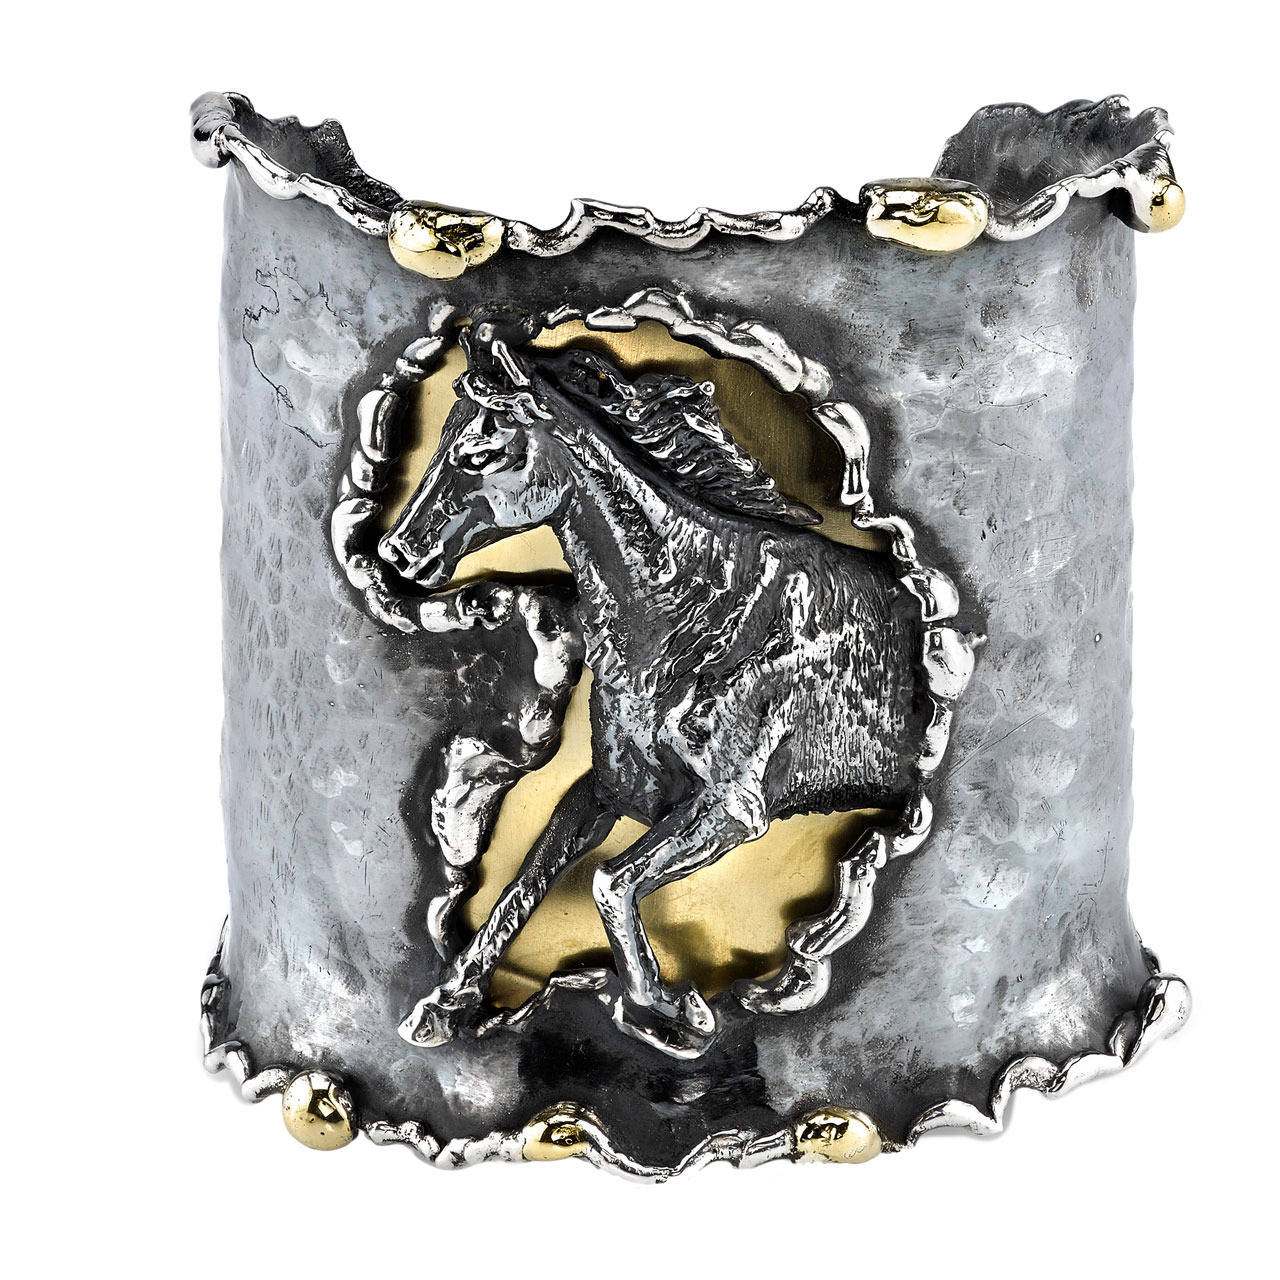 Horse Cuff  - Organic Silver and 18 Karat Yellow Gold Horse Cuff.  Send us an image of your horse and we can customize a cuff bracelet. Available in Rose Gold.